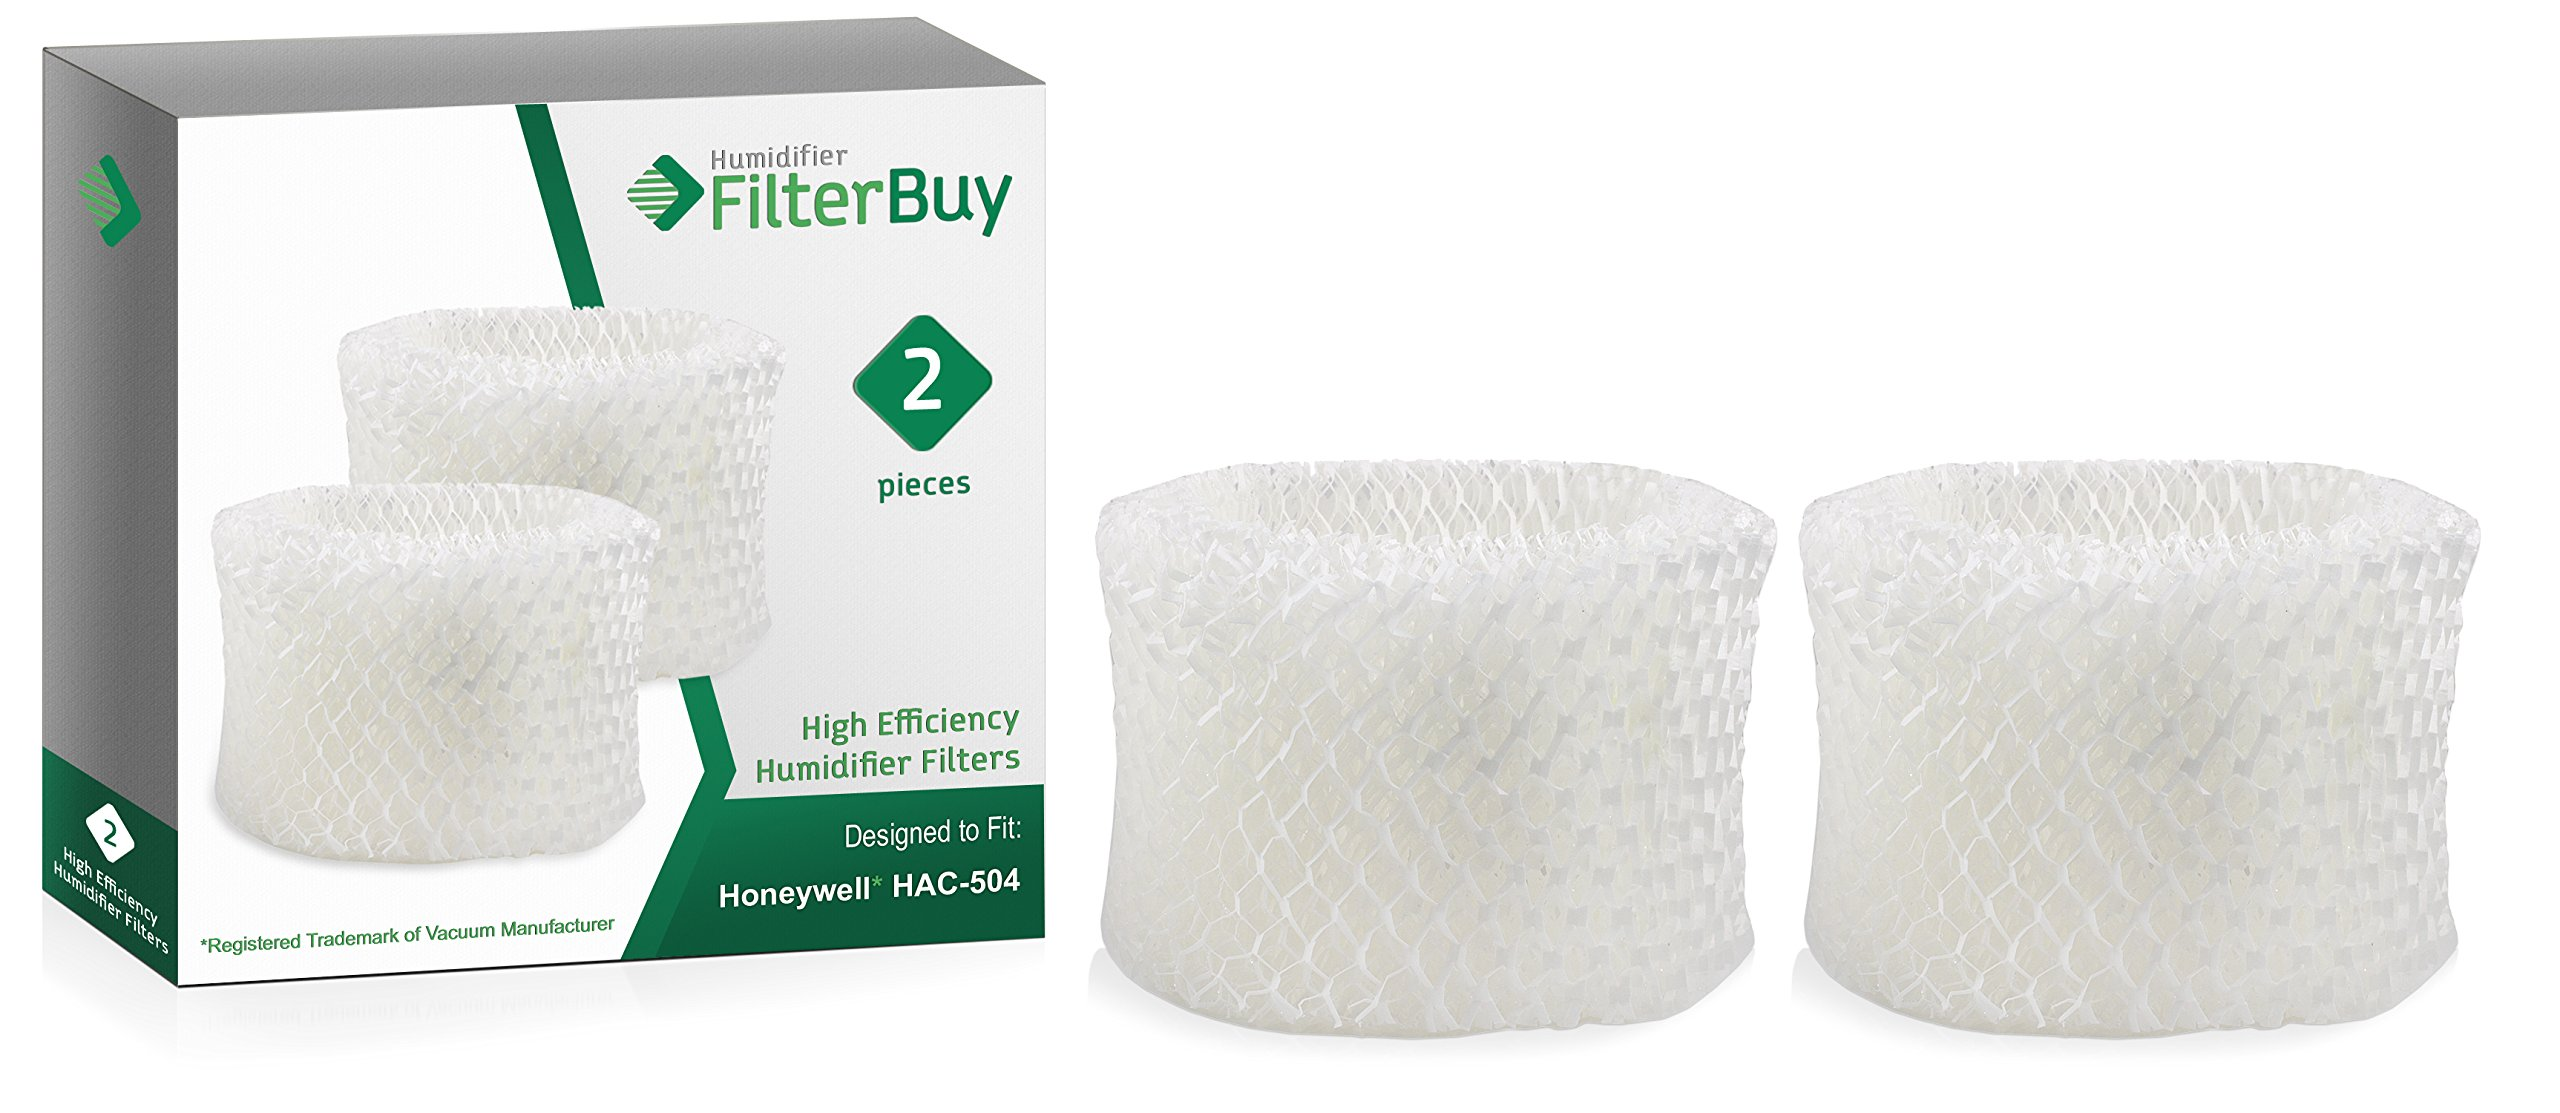 FilterBuy Honeywell HAC-504AW Compatible Humidifier Filters (Pack of 2). Designed to fit Honeywell HCM-600, HCM-710, HCM-300T & HCM-315T. Compare to Part # HAC-504AW / HAC-504 by FilterBuy